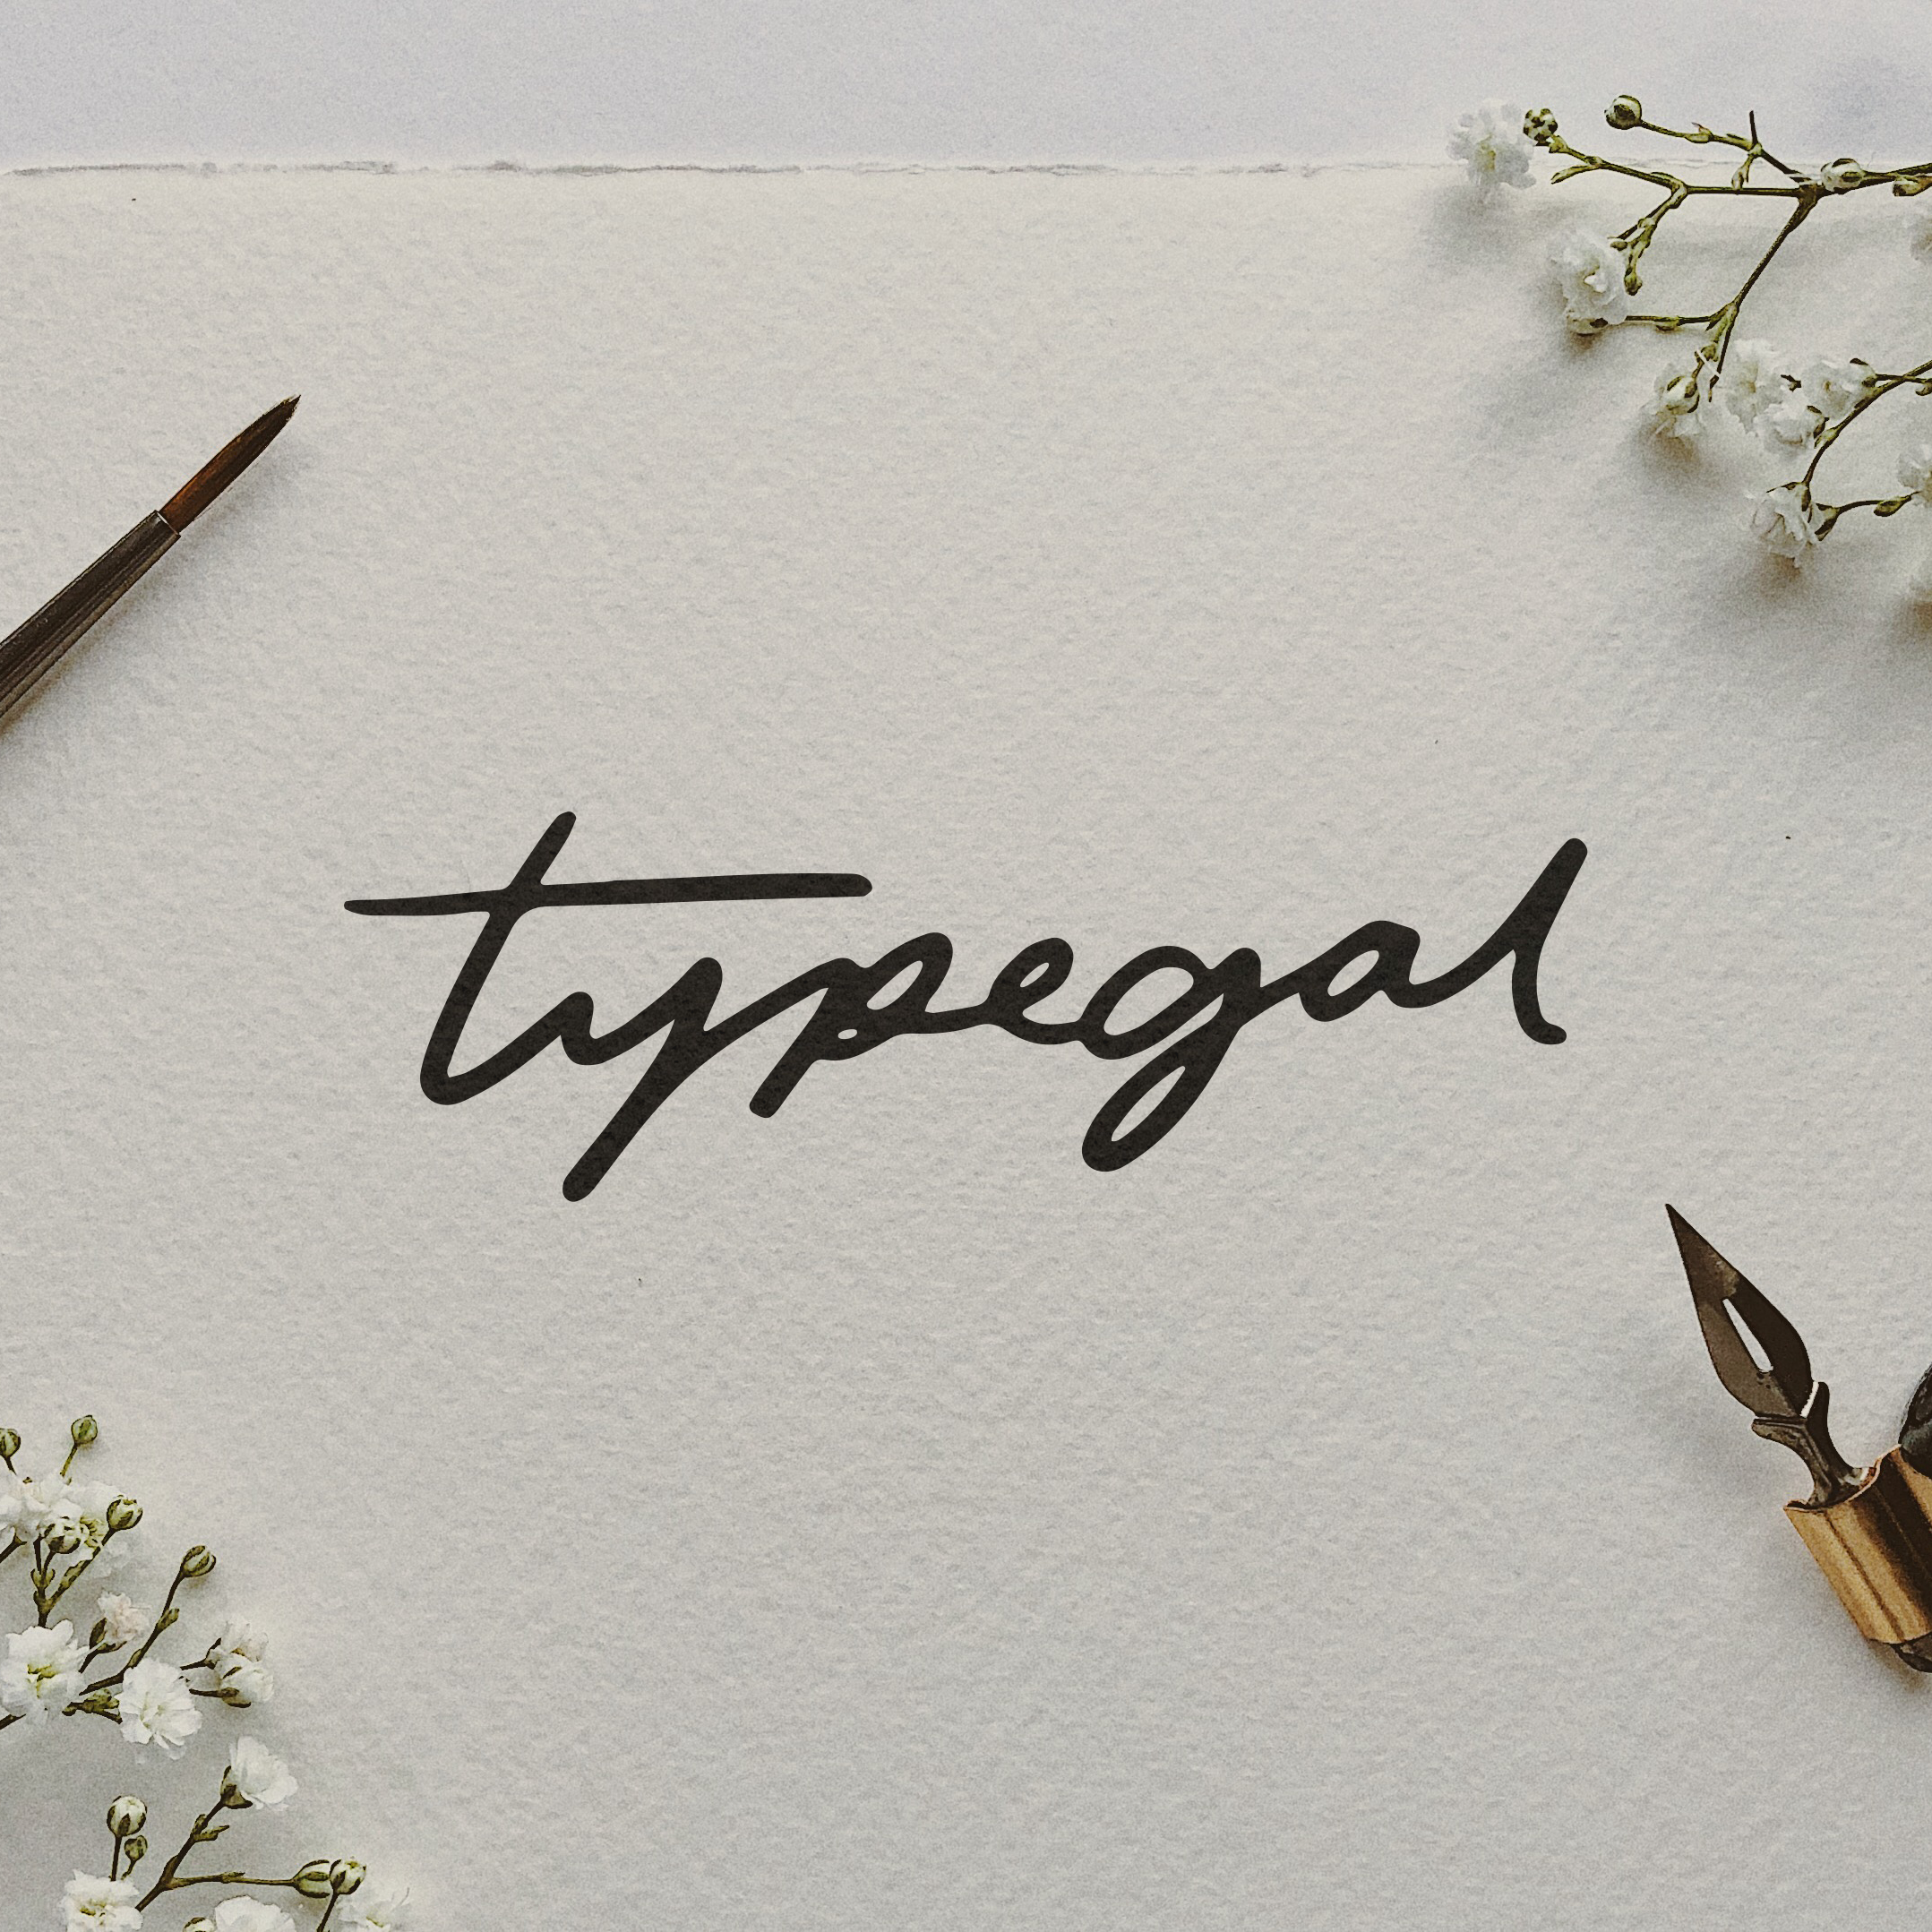 welcome-to-typegal.png